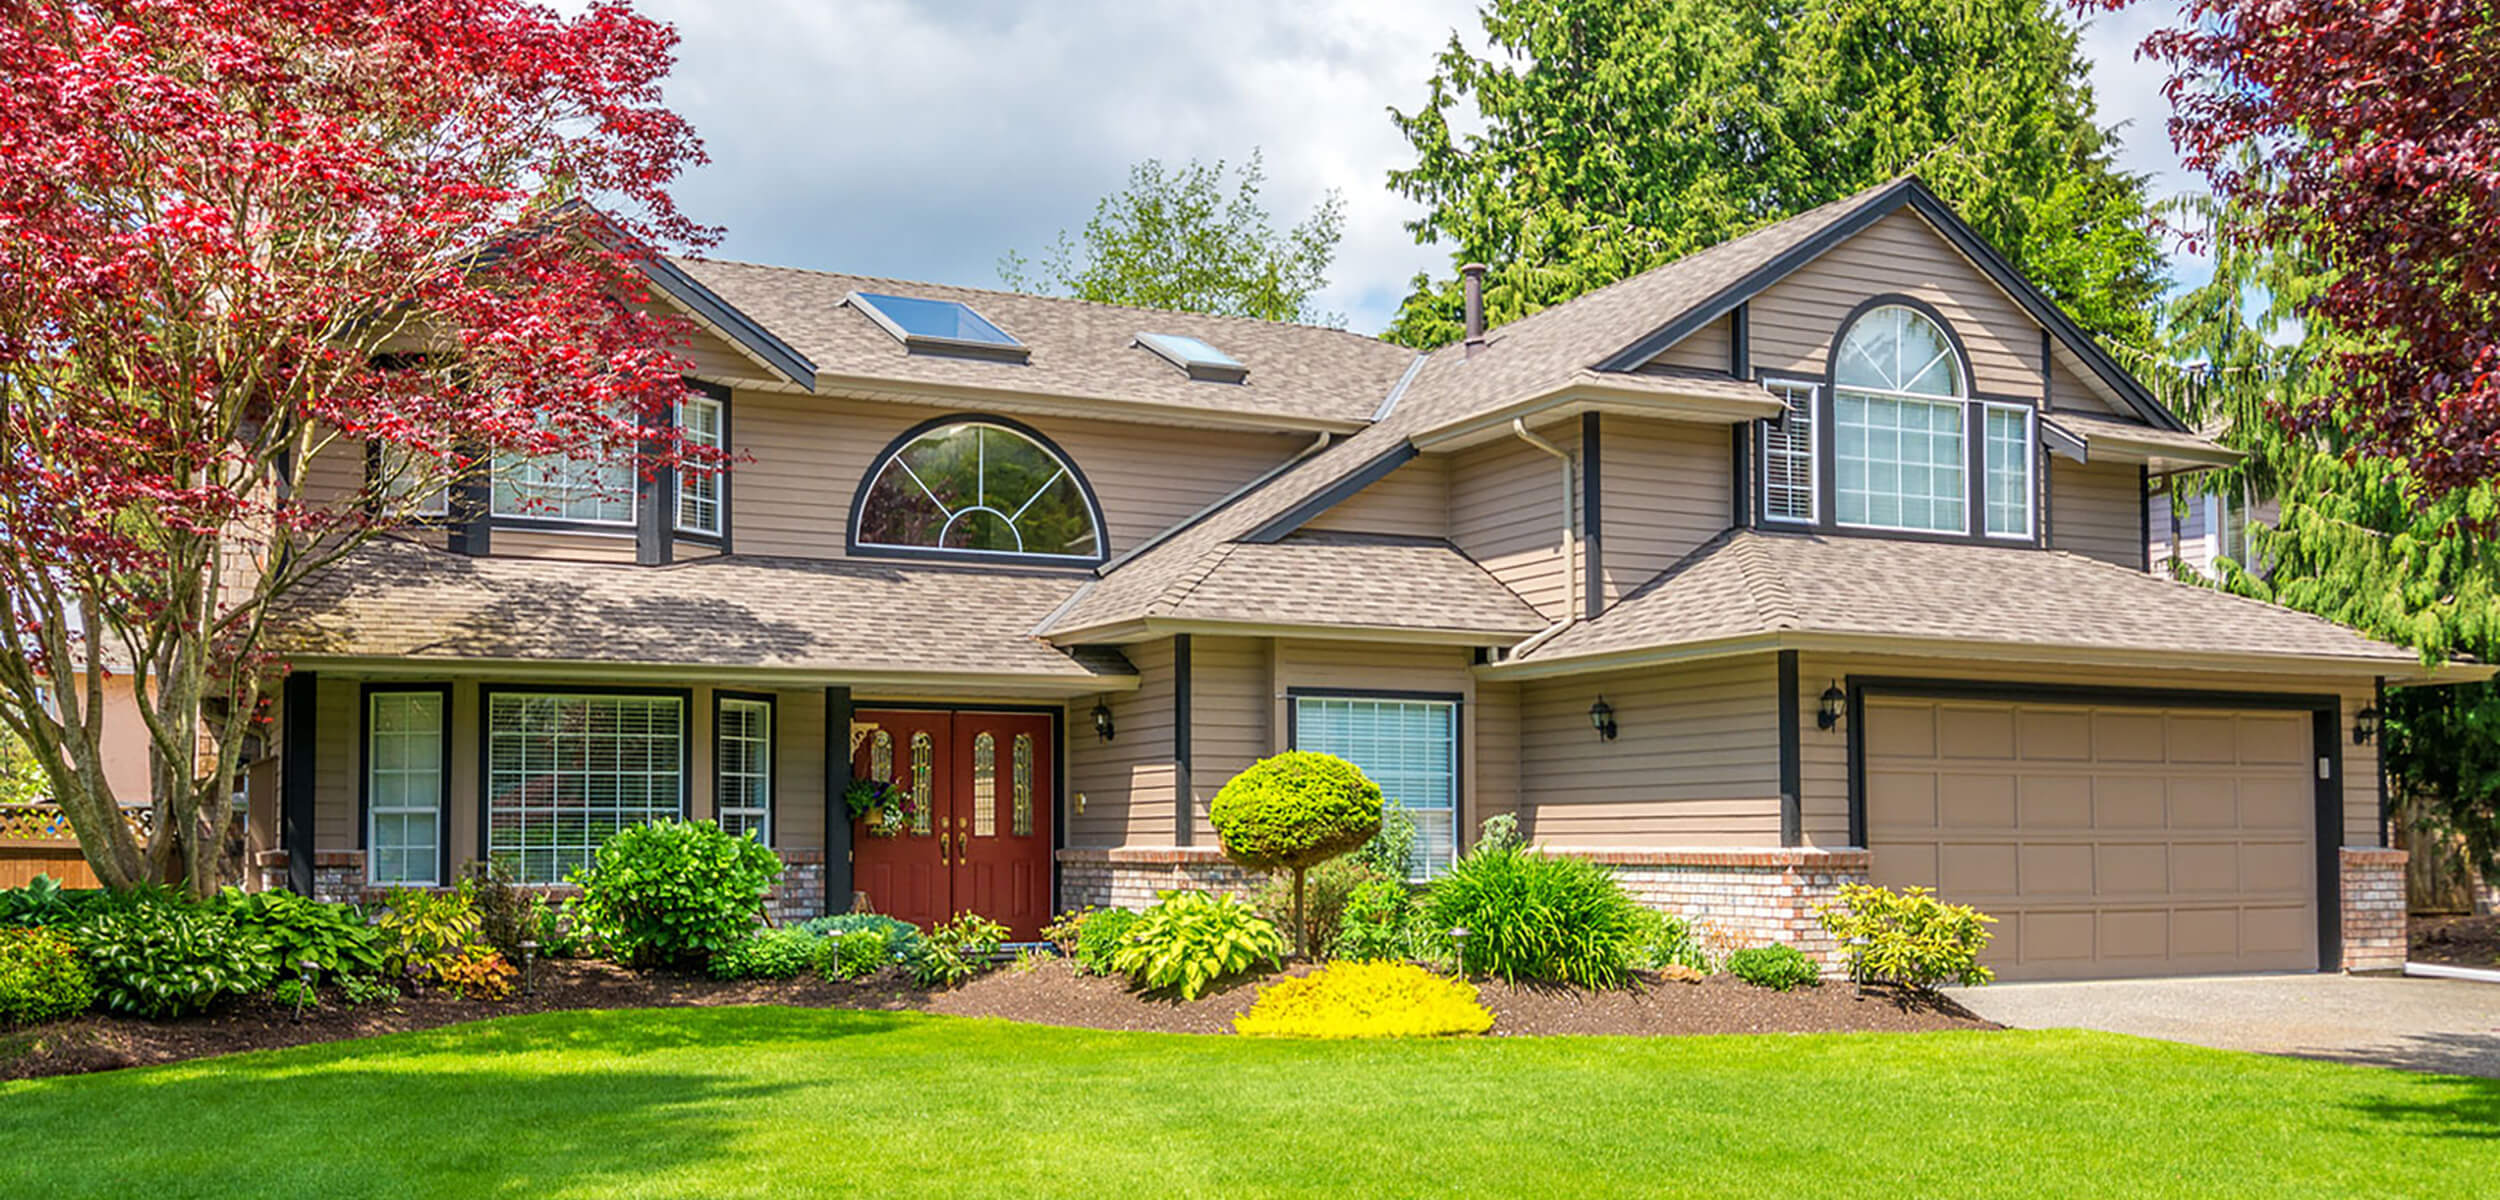 Find your dream home in Ingersoll Ontario